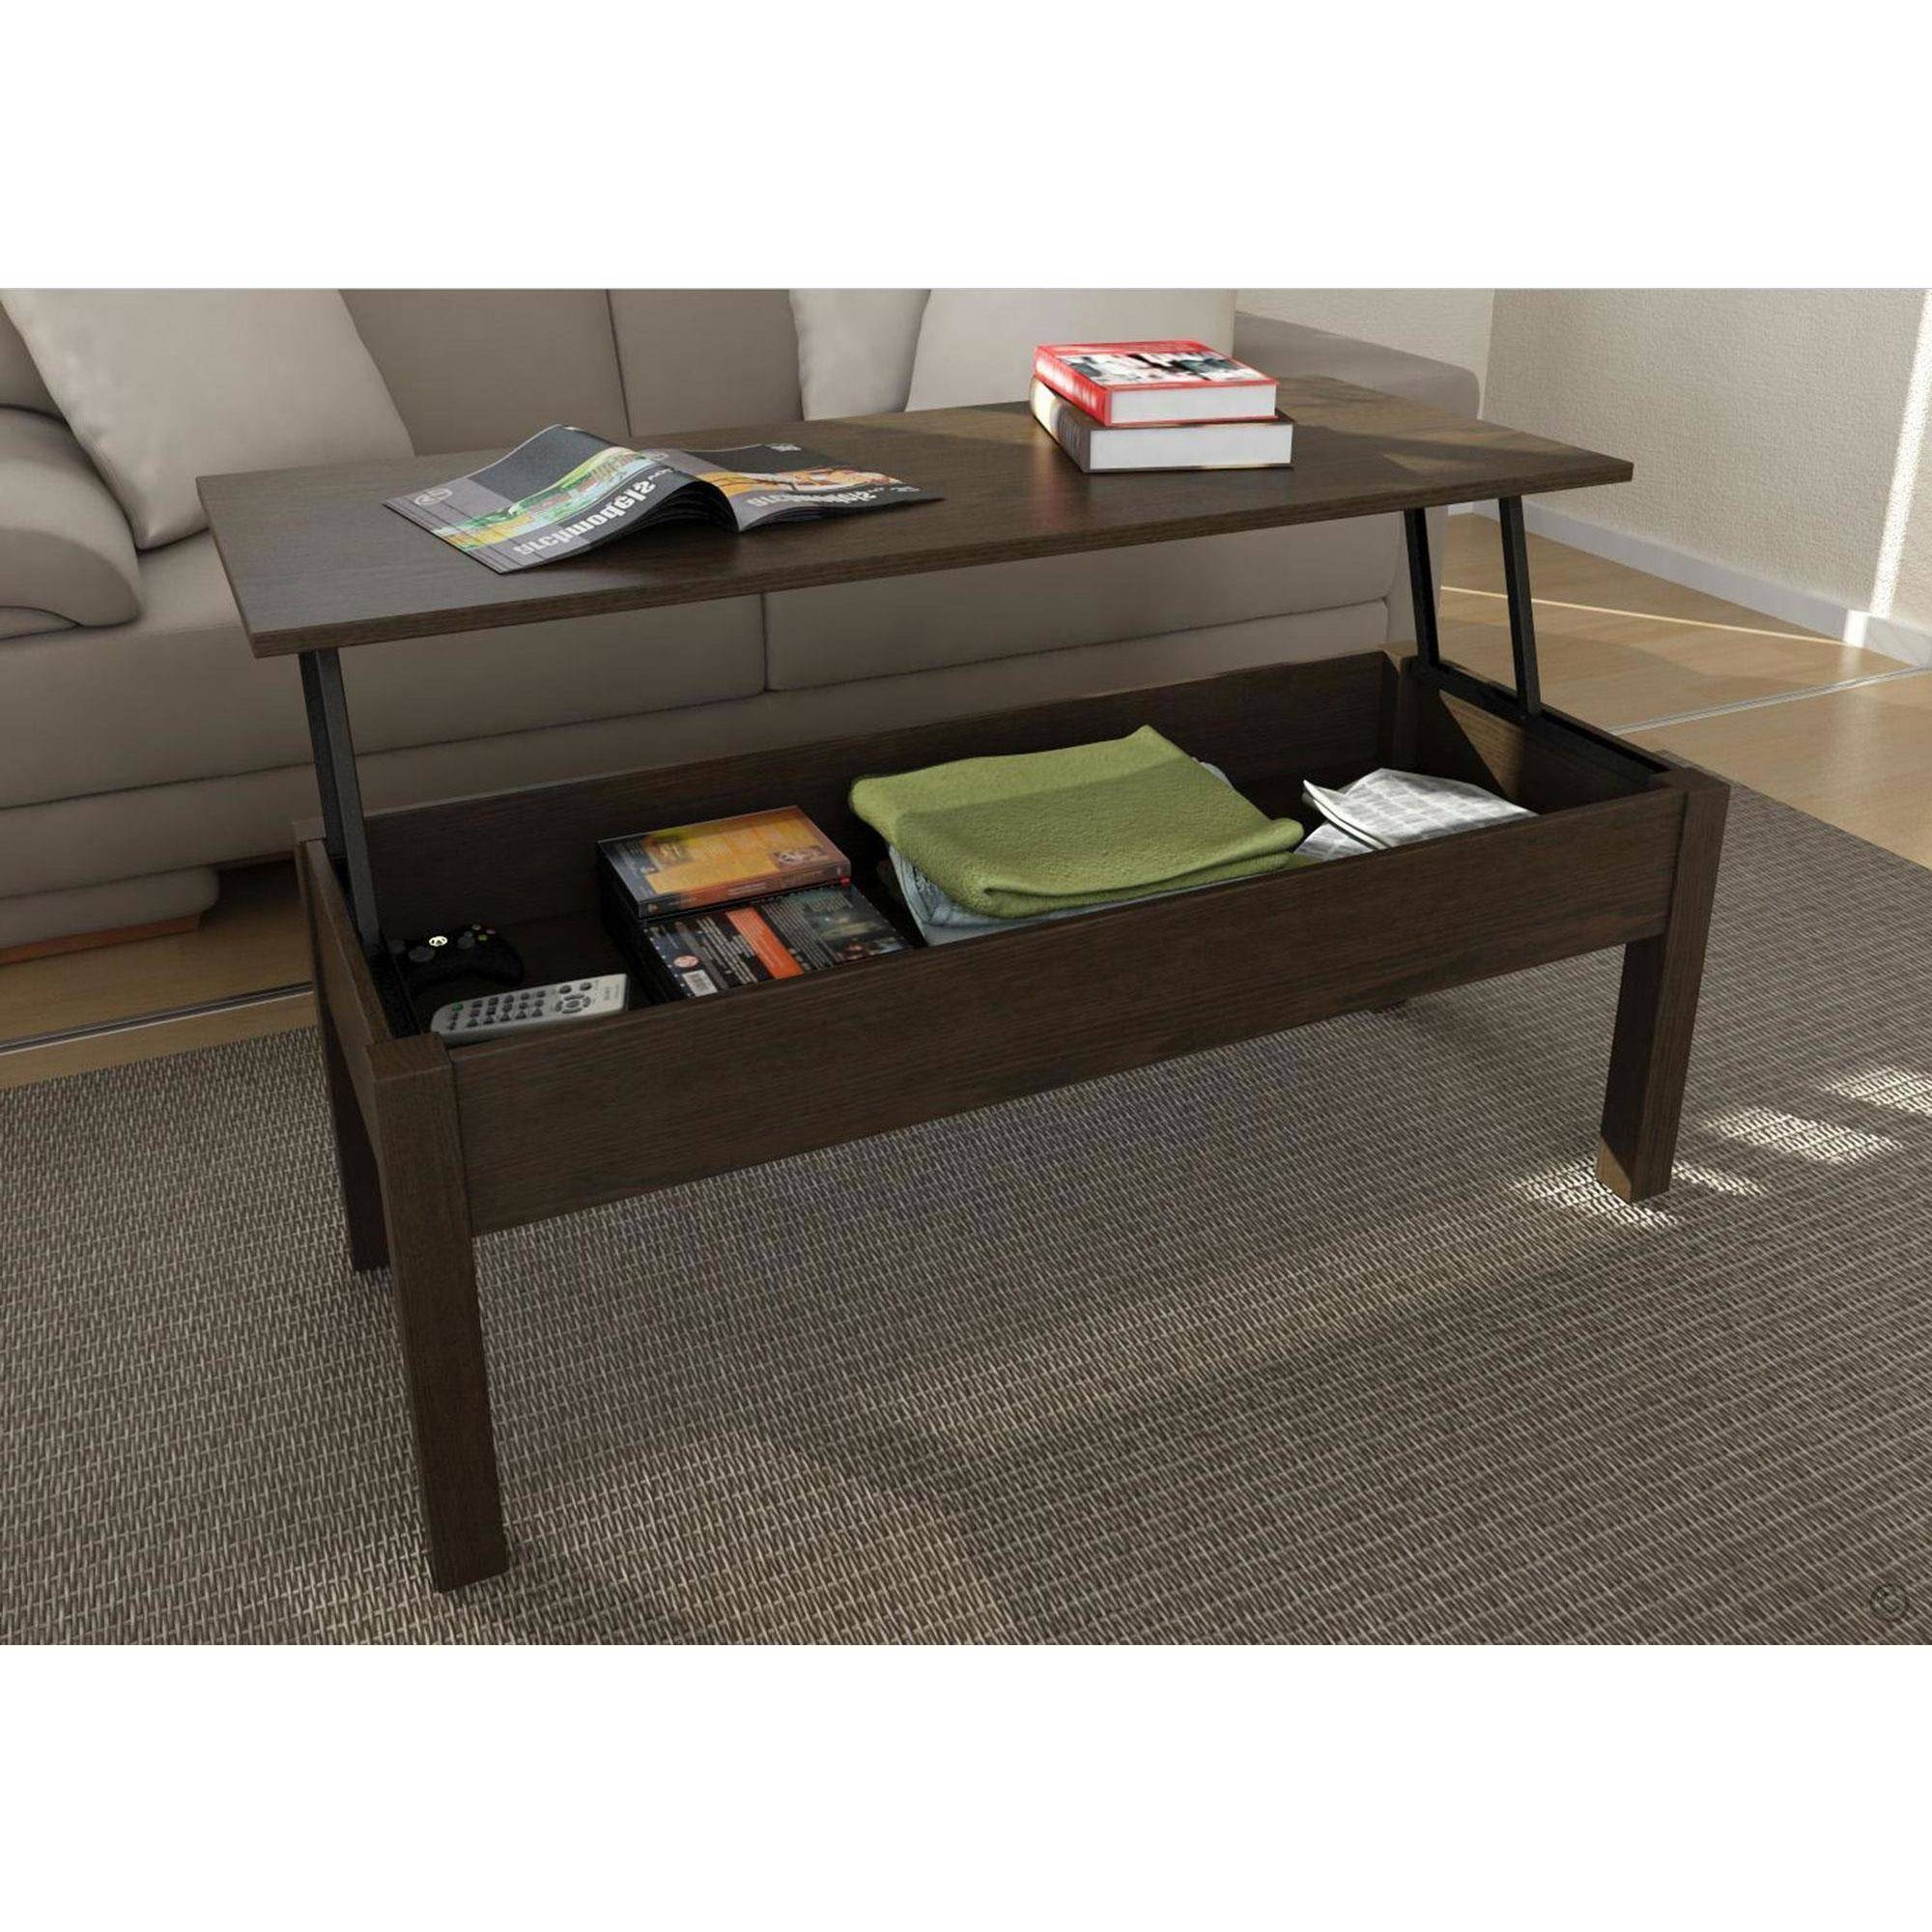 Mainstays Lift-Top Coffee Table, Multiple Colors - Walmart regarding Flip Up Coffee Tables (Image 22 of 30)